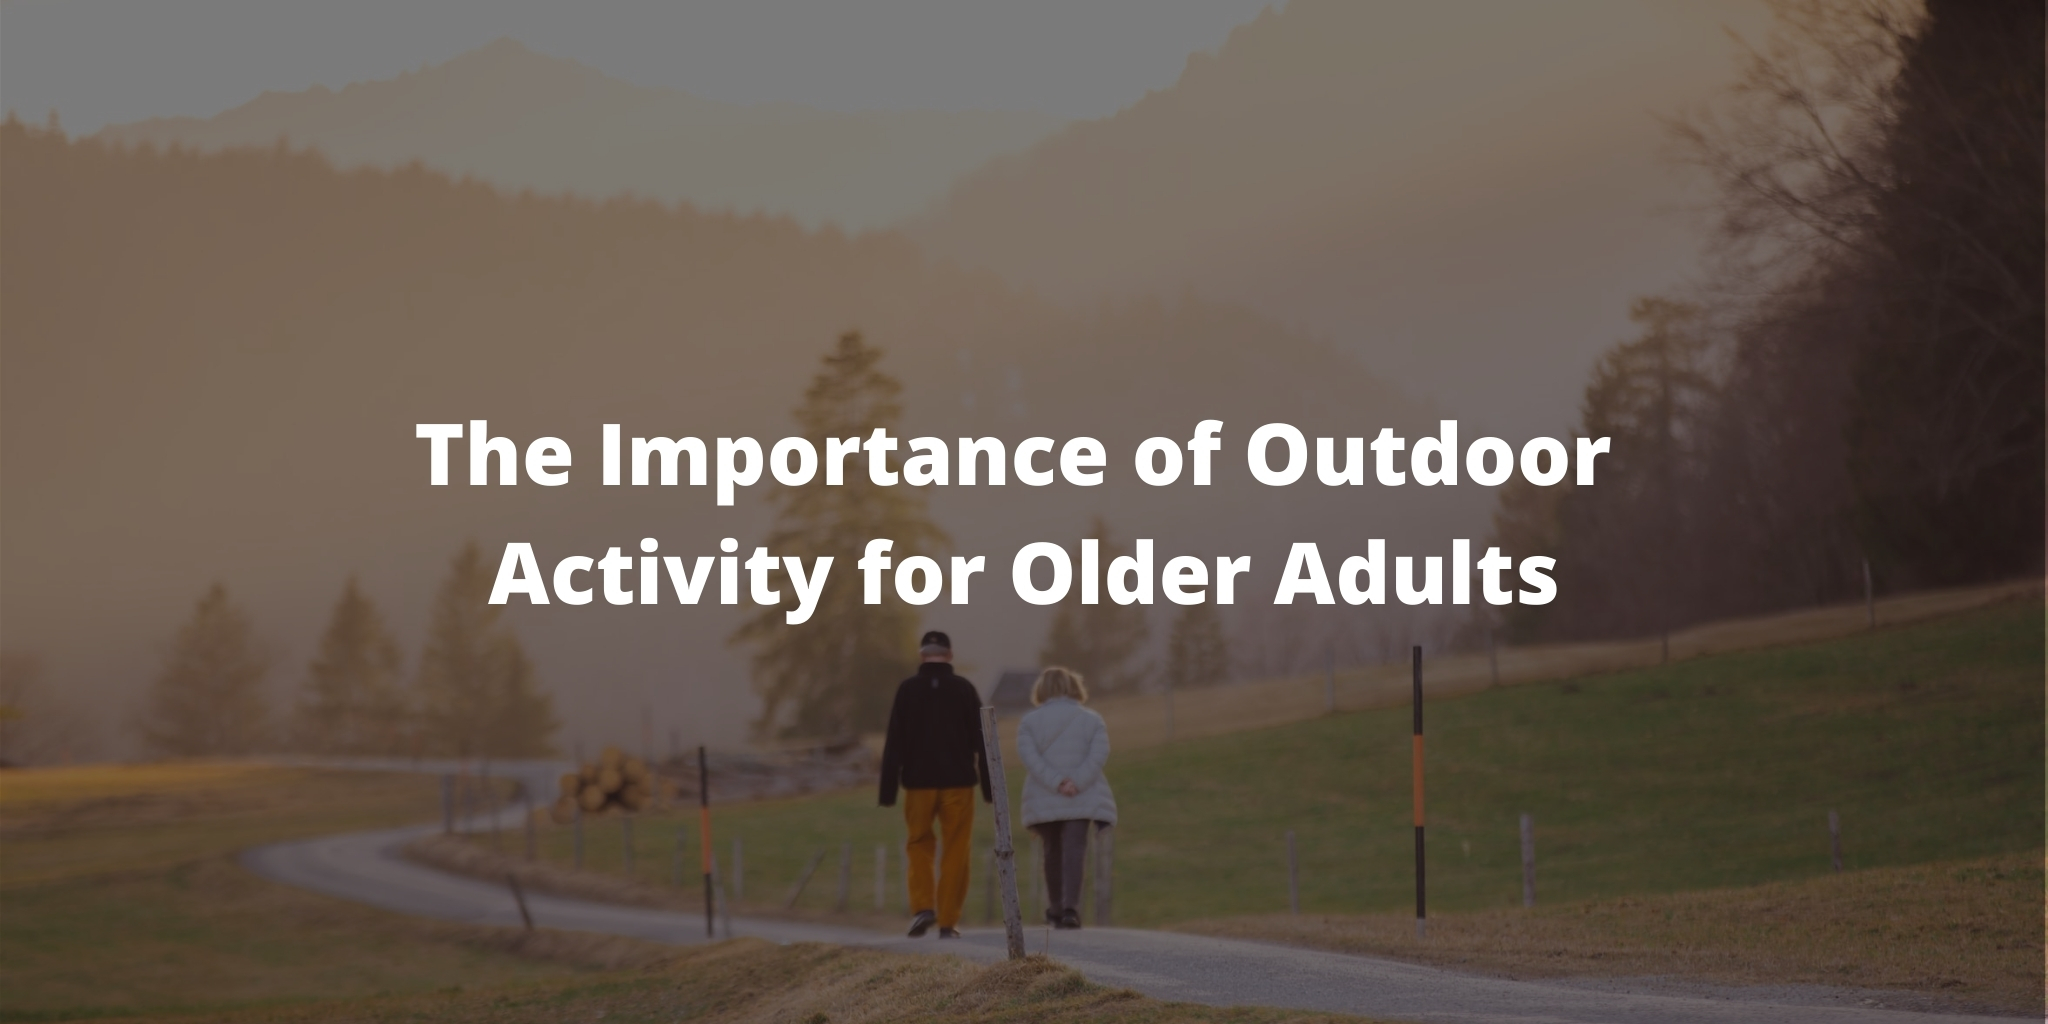 The Importance of Outdoor Activity for Older Adults